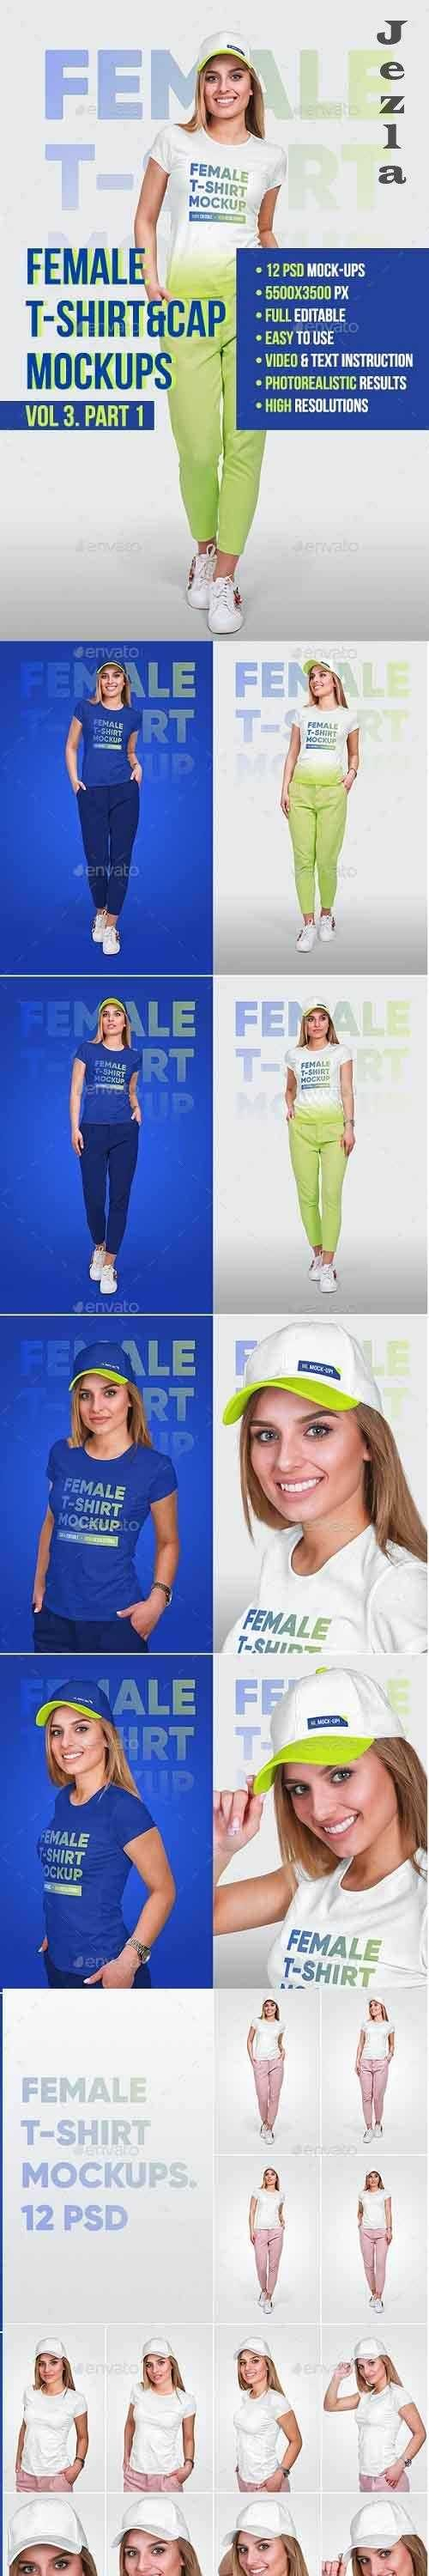 Female T-Shirt & Baseball Cap Mockup - 22056938 - 5336808